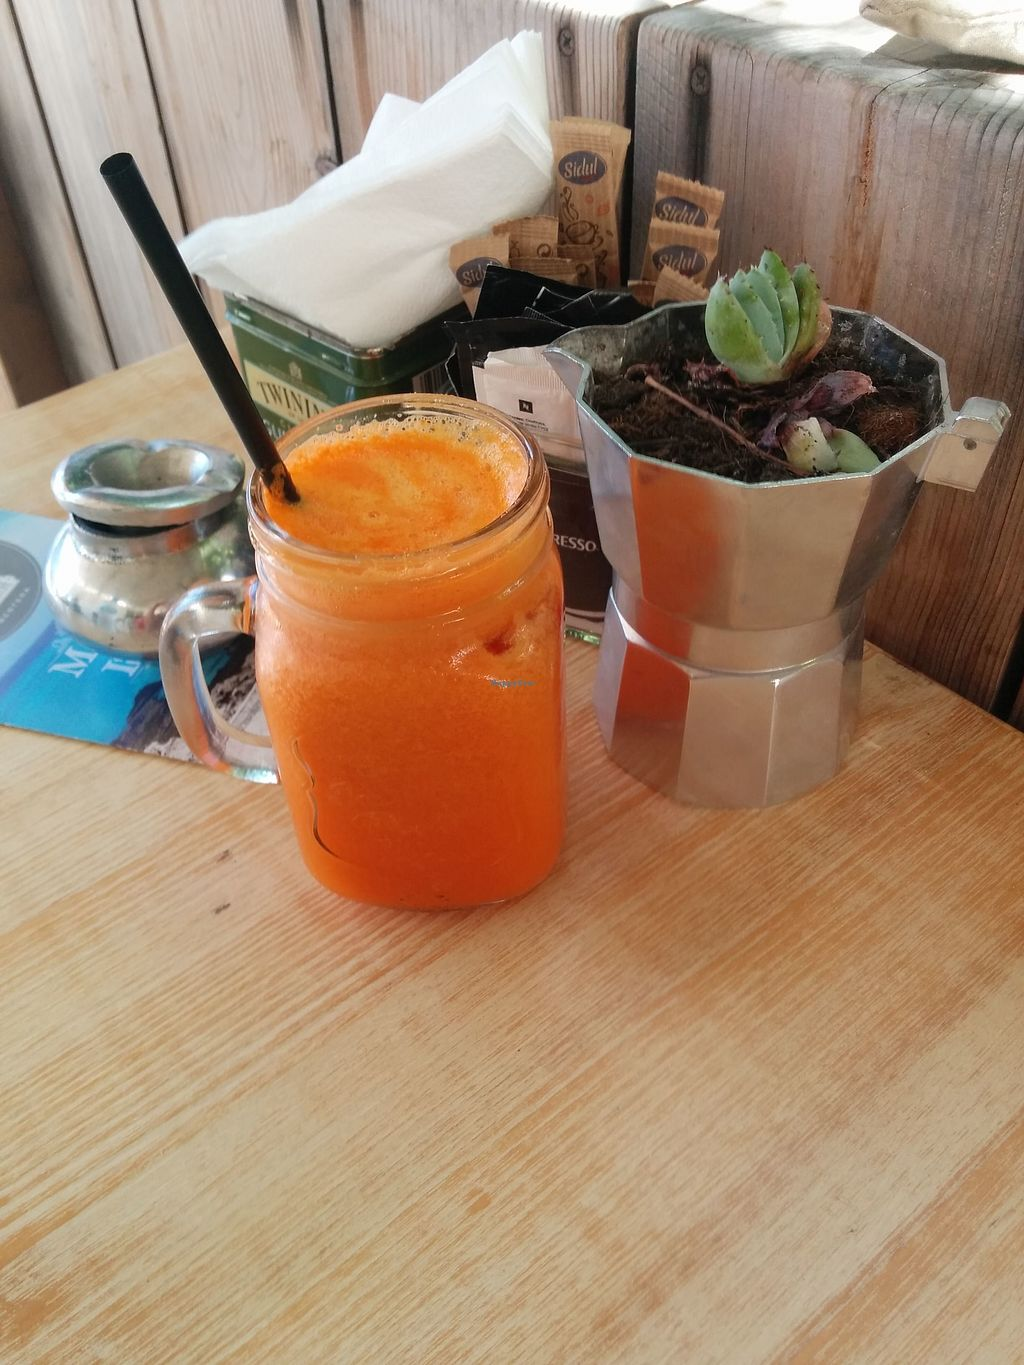 "Photo of Claro  by <a href=""/members/profile/InbalTenembaum"">InbalTenembaum</a> <br/>Fresh cold juice on a hot day <br/> July 30, 2017  - <a href='/contact/abuse/image/55290/286621'>Report</a>"